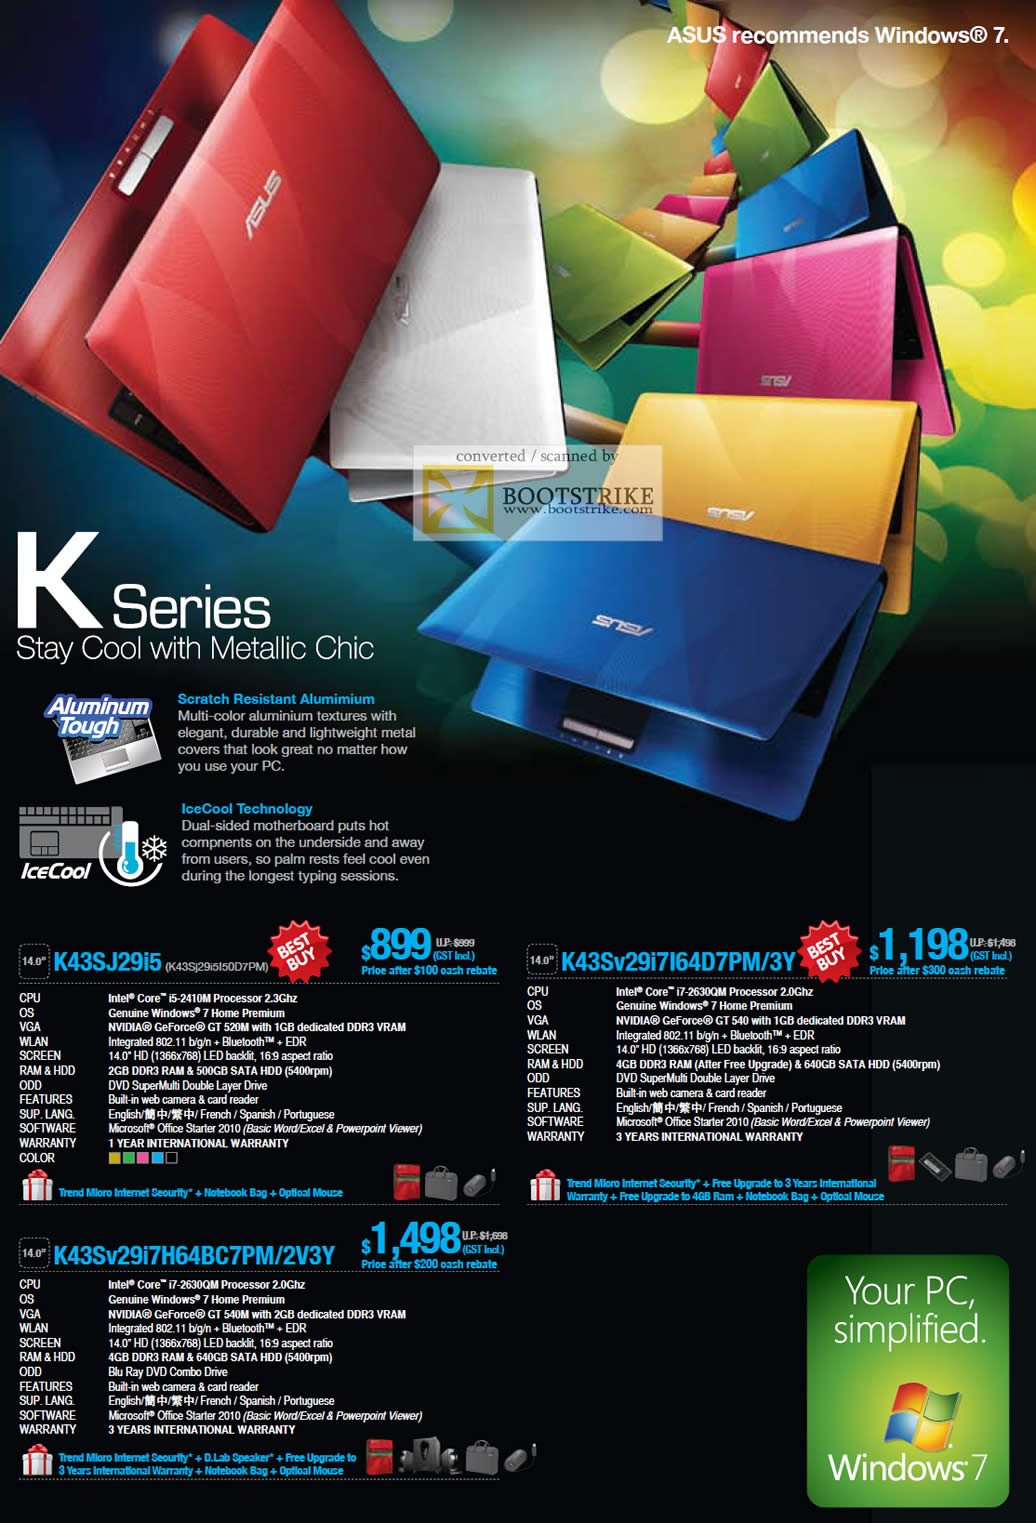 PC Show 2011 price list image brochure of ASUS Notebooks K Series K43SJ29i5 K43Sv29i7I64D7PM 3Y K43Sv29i7H64BC7PM 2V3Y IceCool